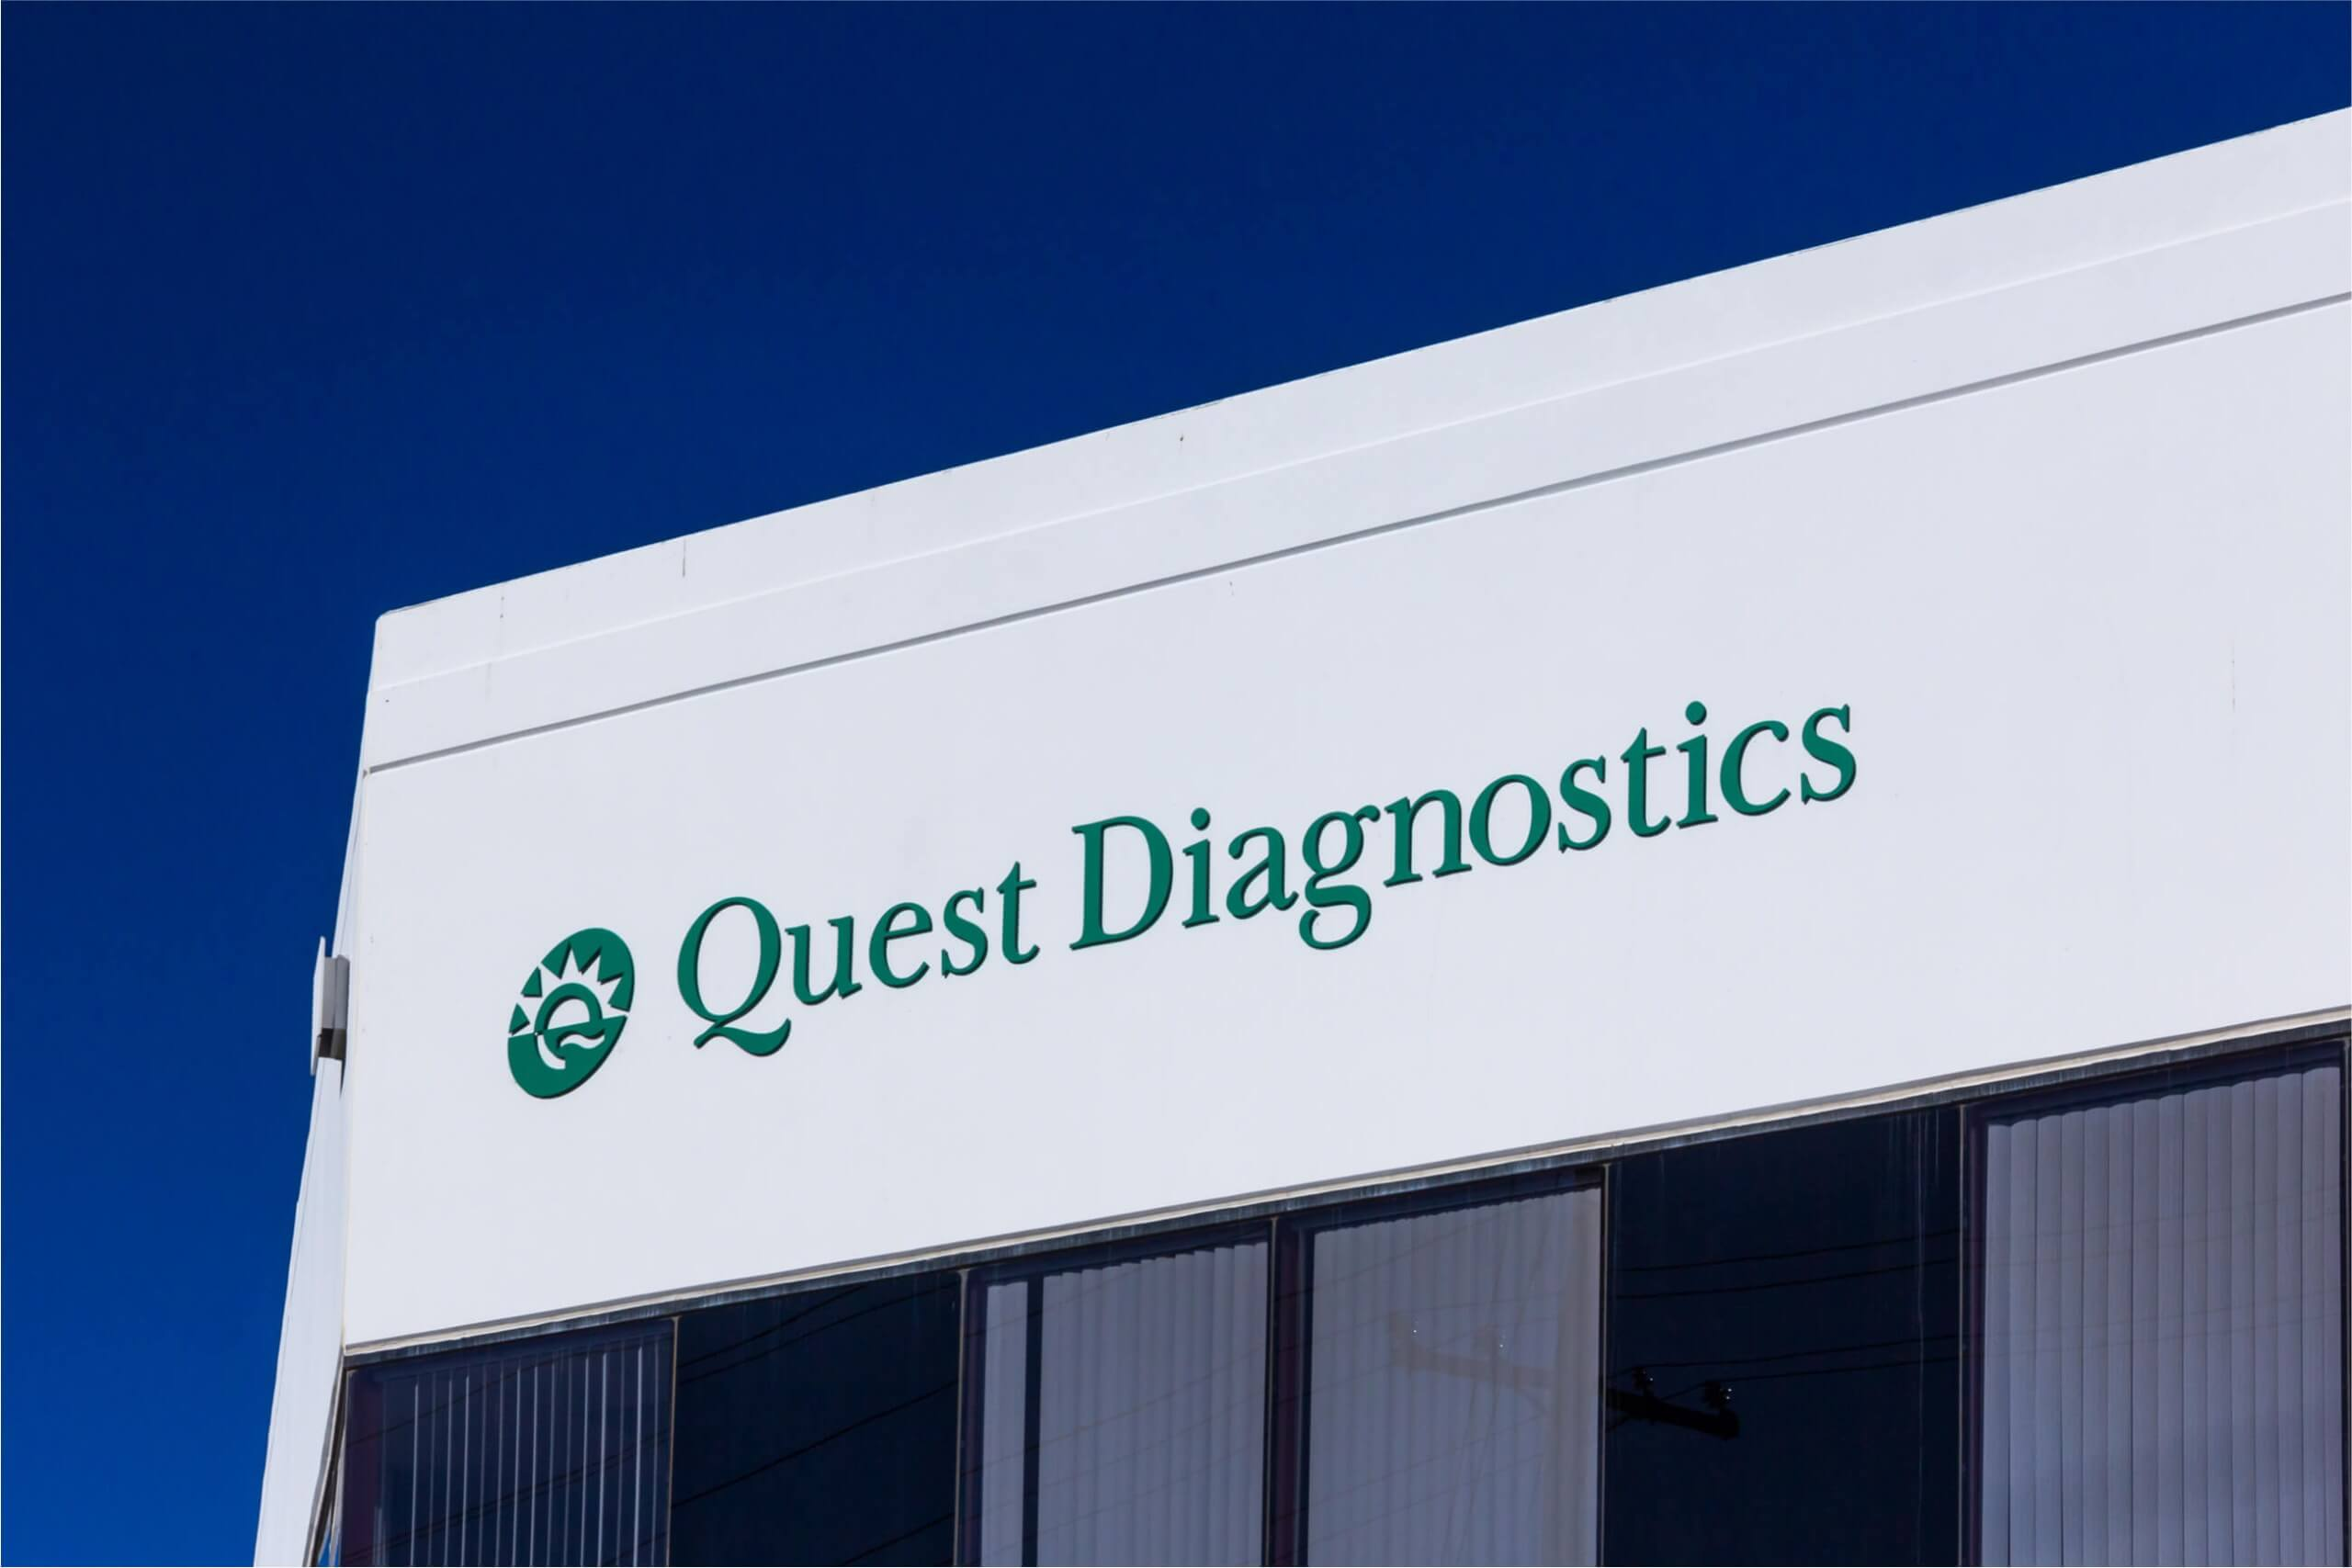 19 million patient records were stolen from Quest Diagnostics and LabCorp